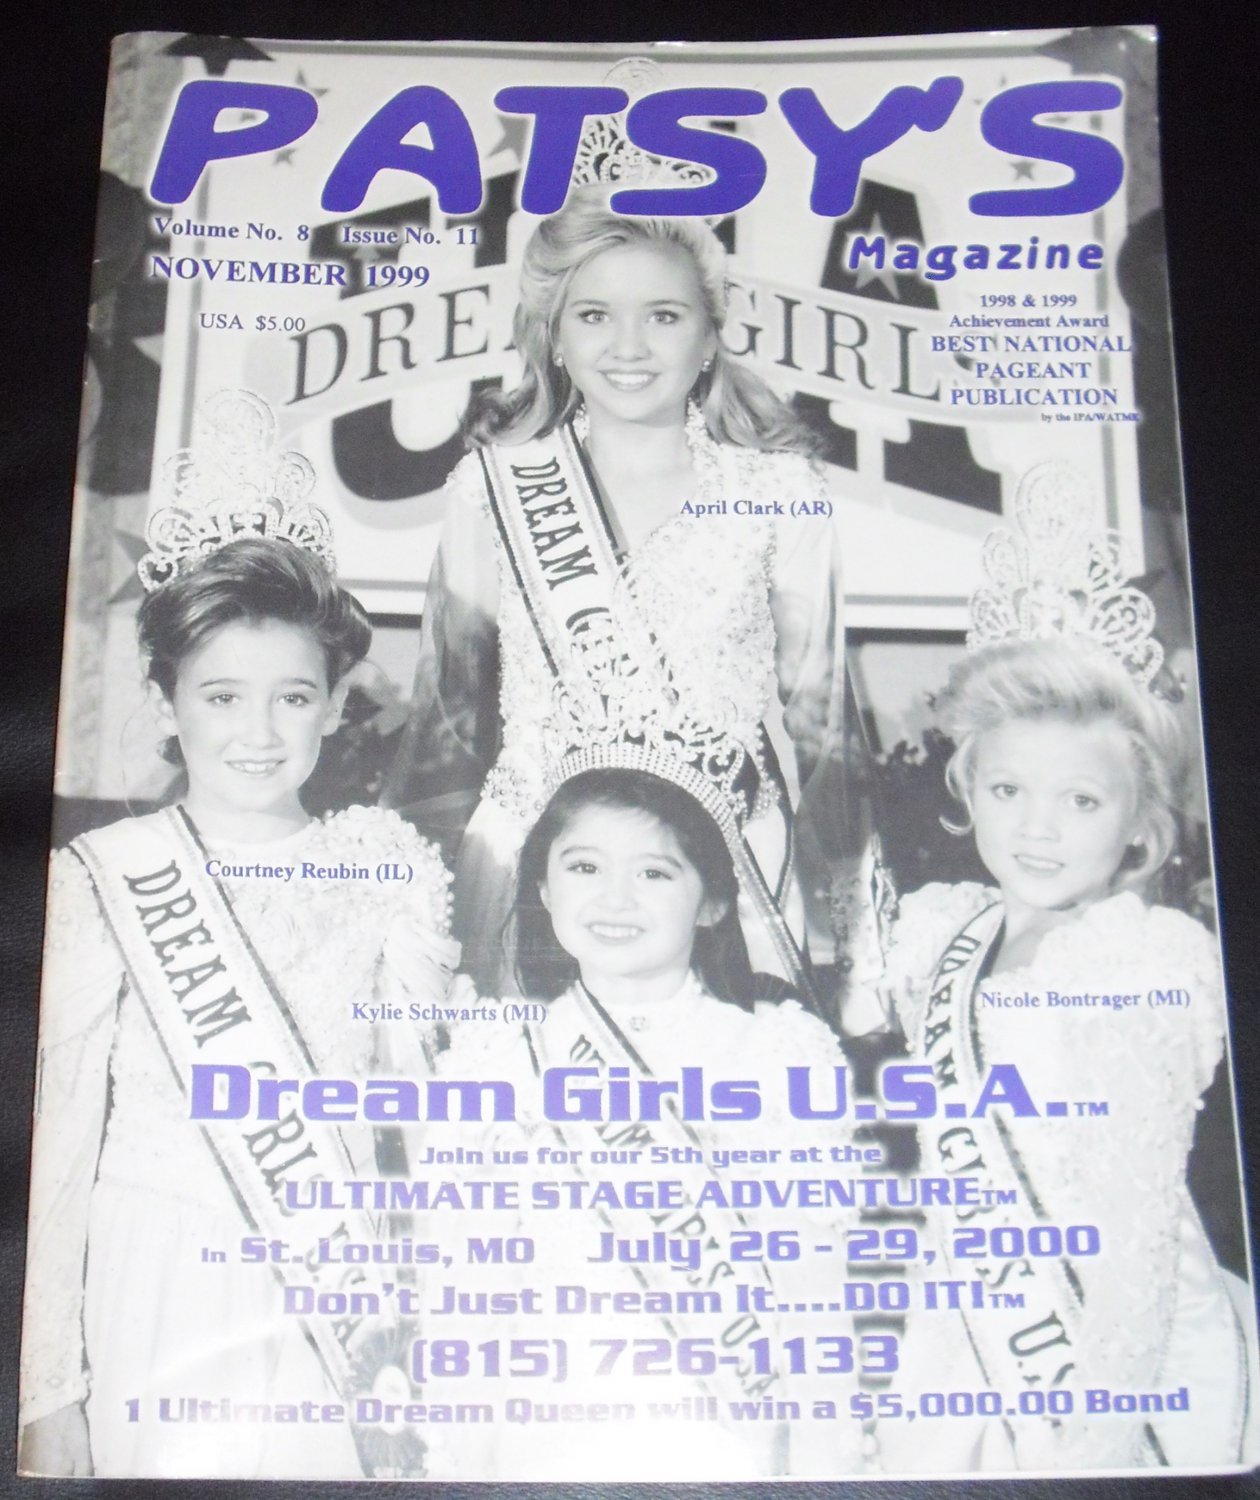 Patsy's Magazine November 1999, Volume No. 8, Issue No. 11